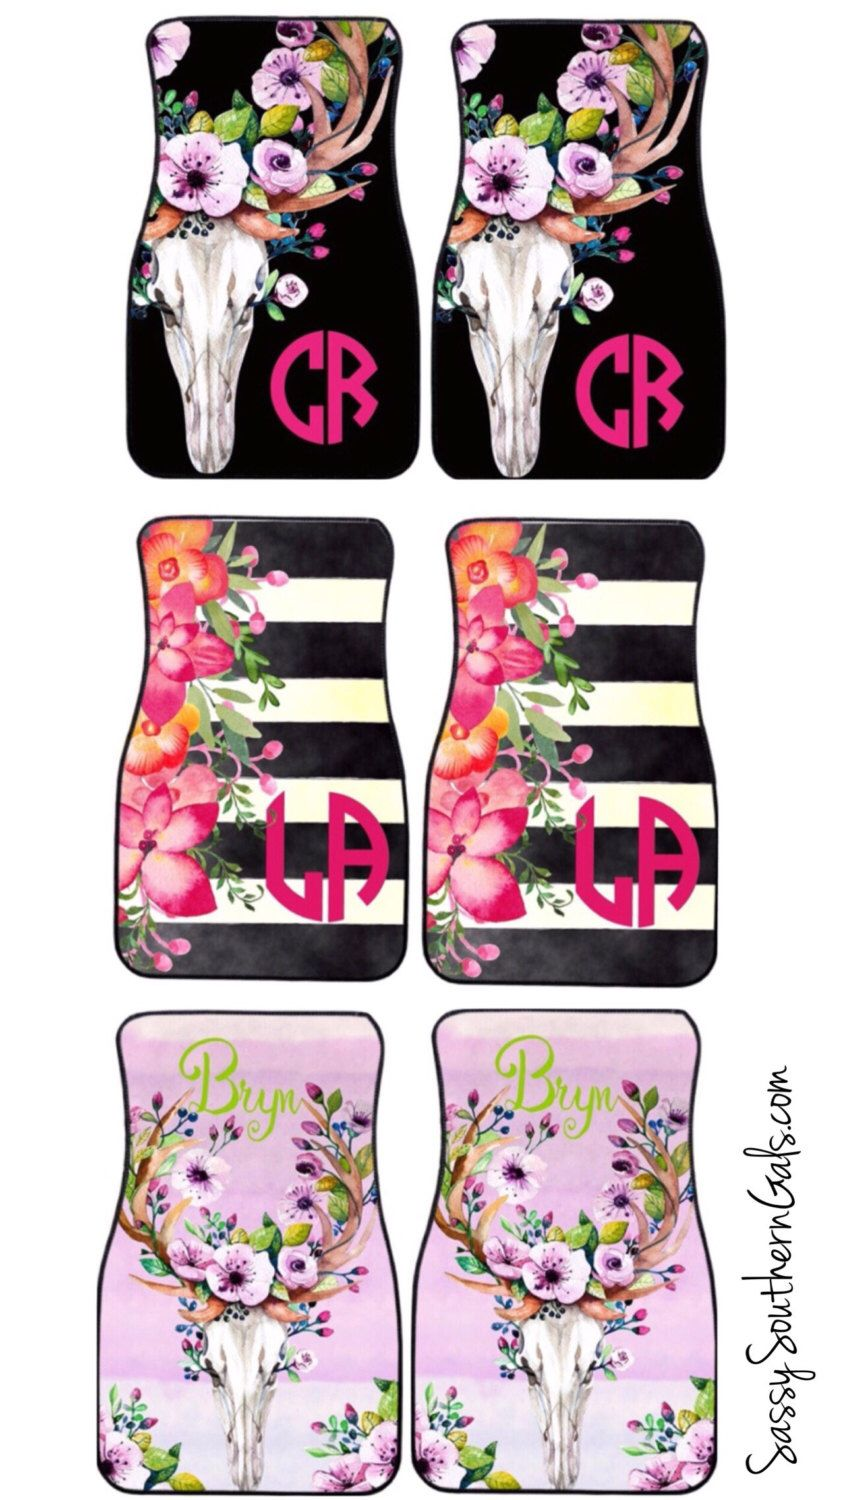 mats floor monogram pin her cute decor monogrammed custom for black carmats car floral accessories classy